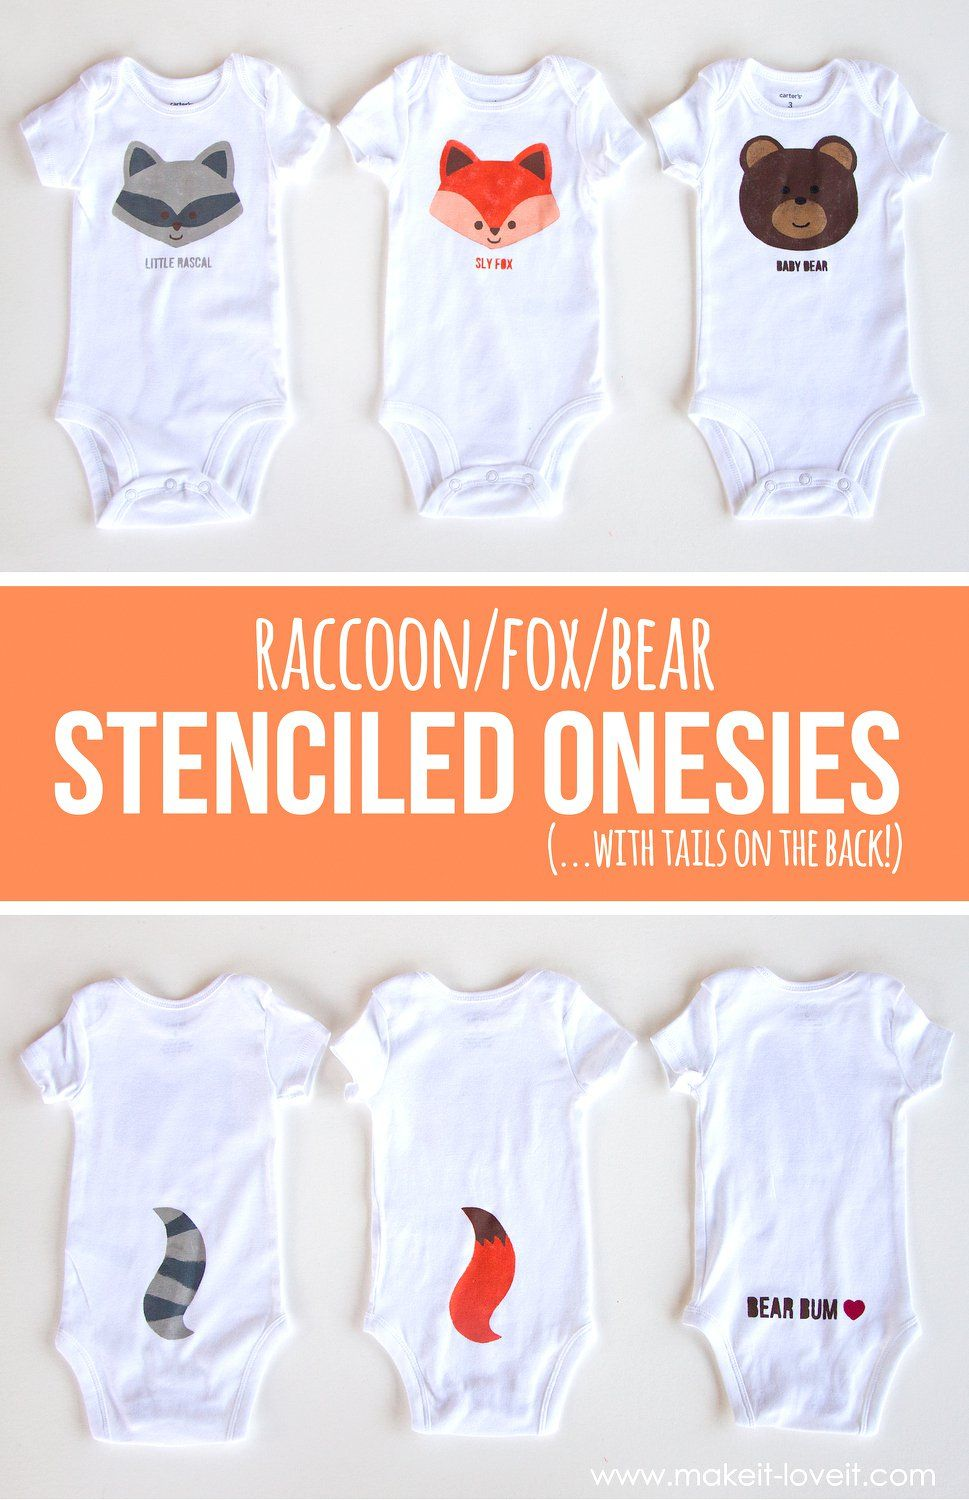 a2c6a0bd5557 Fox Bear Raccoon DIY Stenciled Onesies (…with tails on the back ...